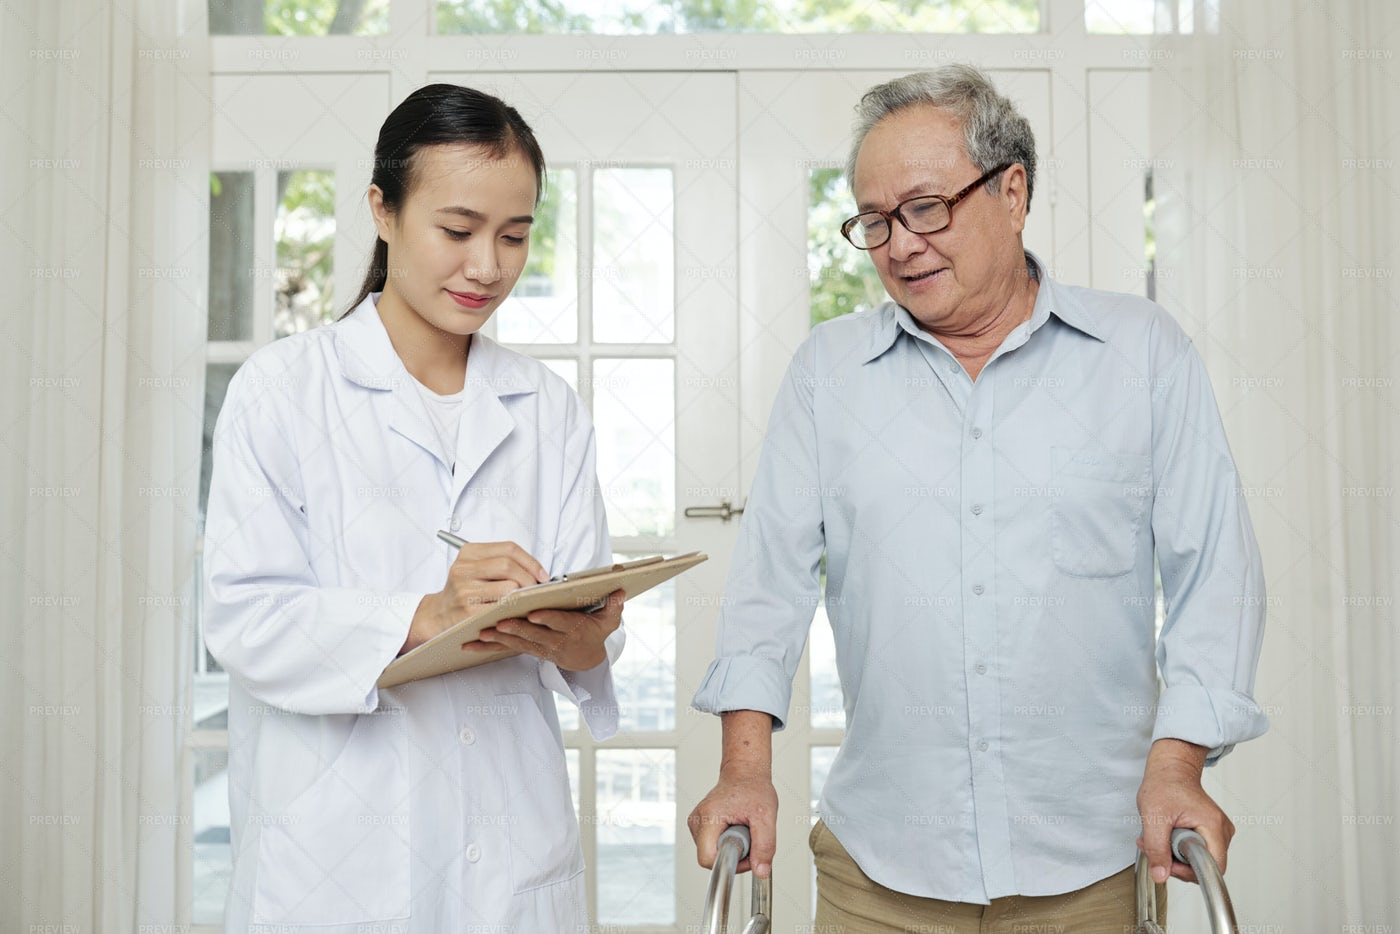 Doctor Coming To Patient's Home: Stock Photos